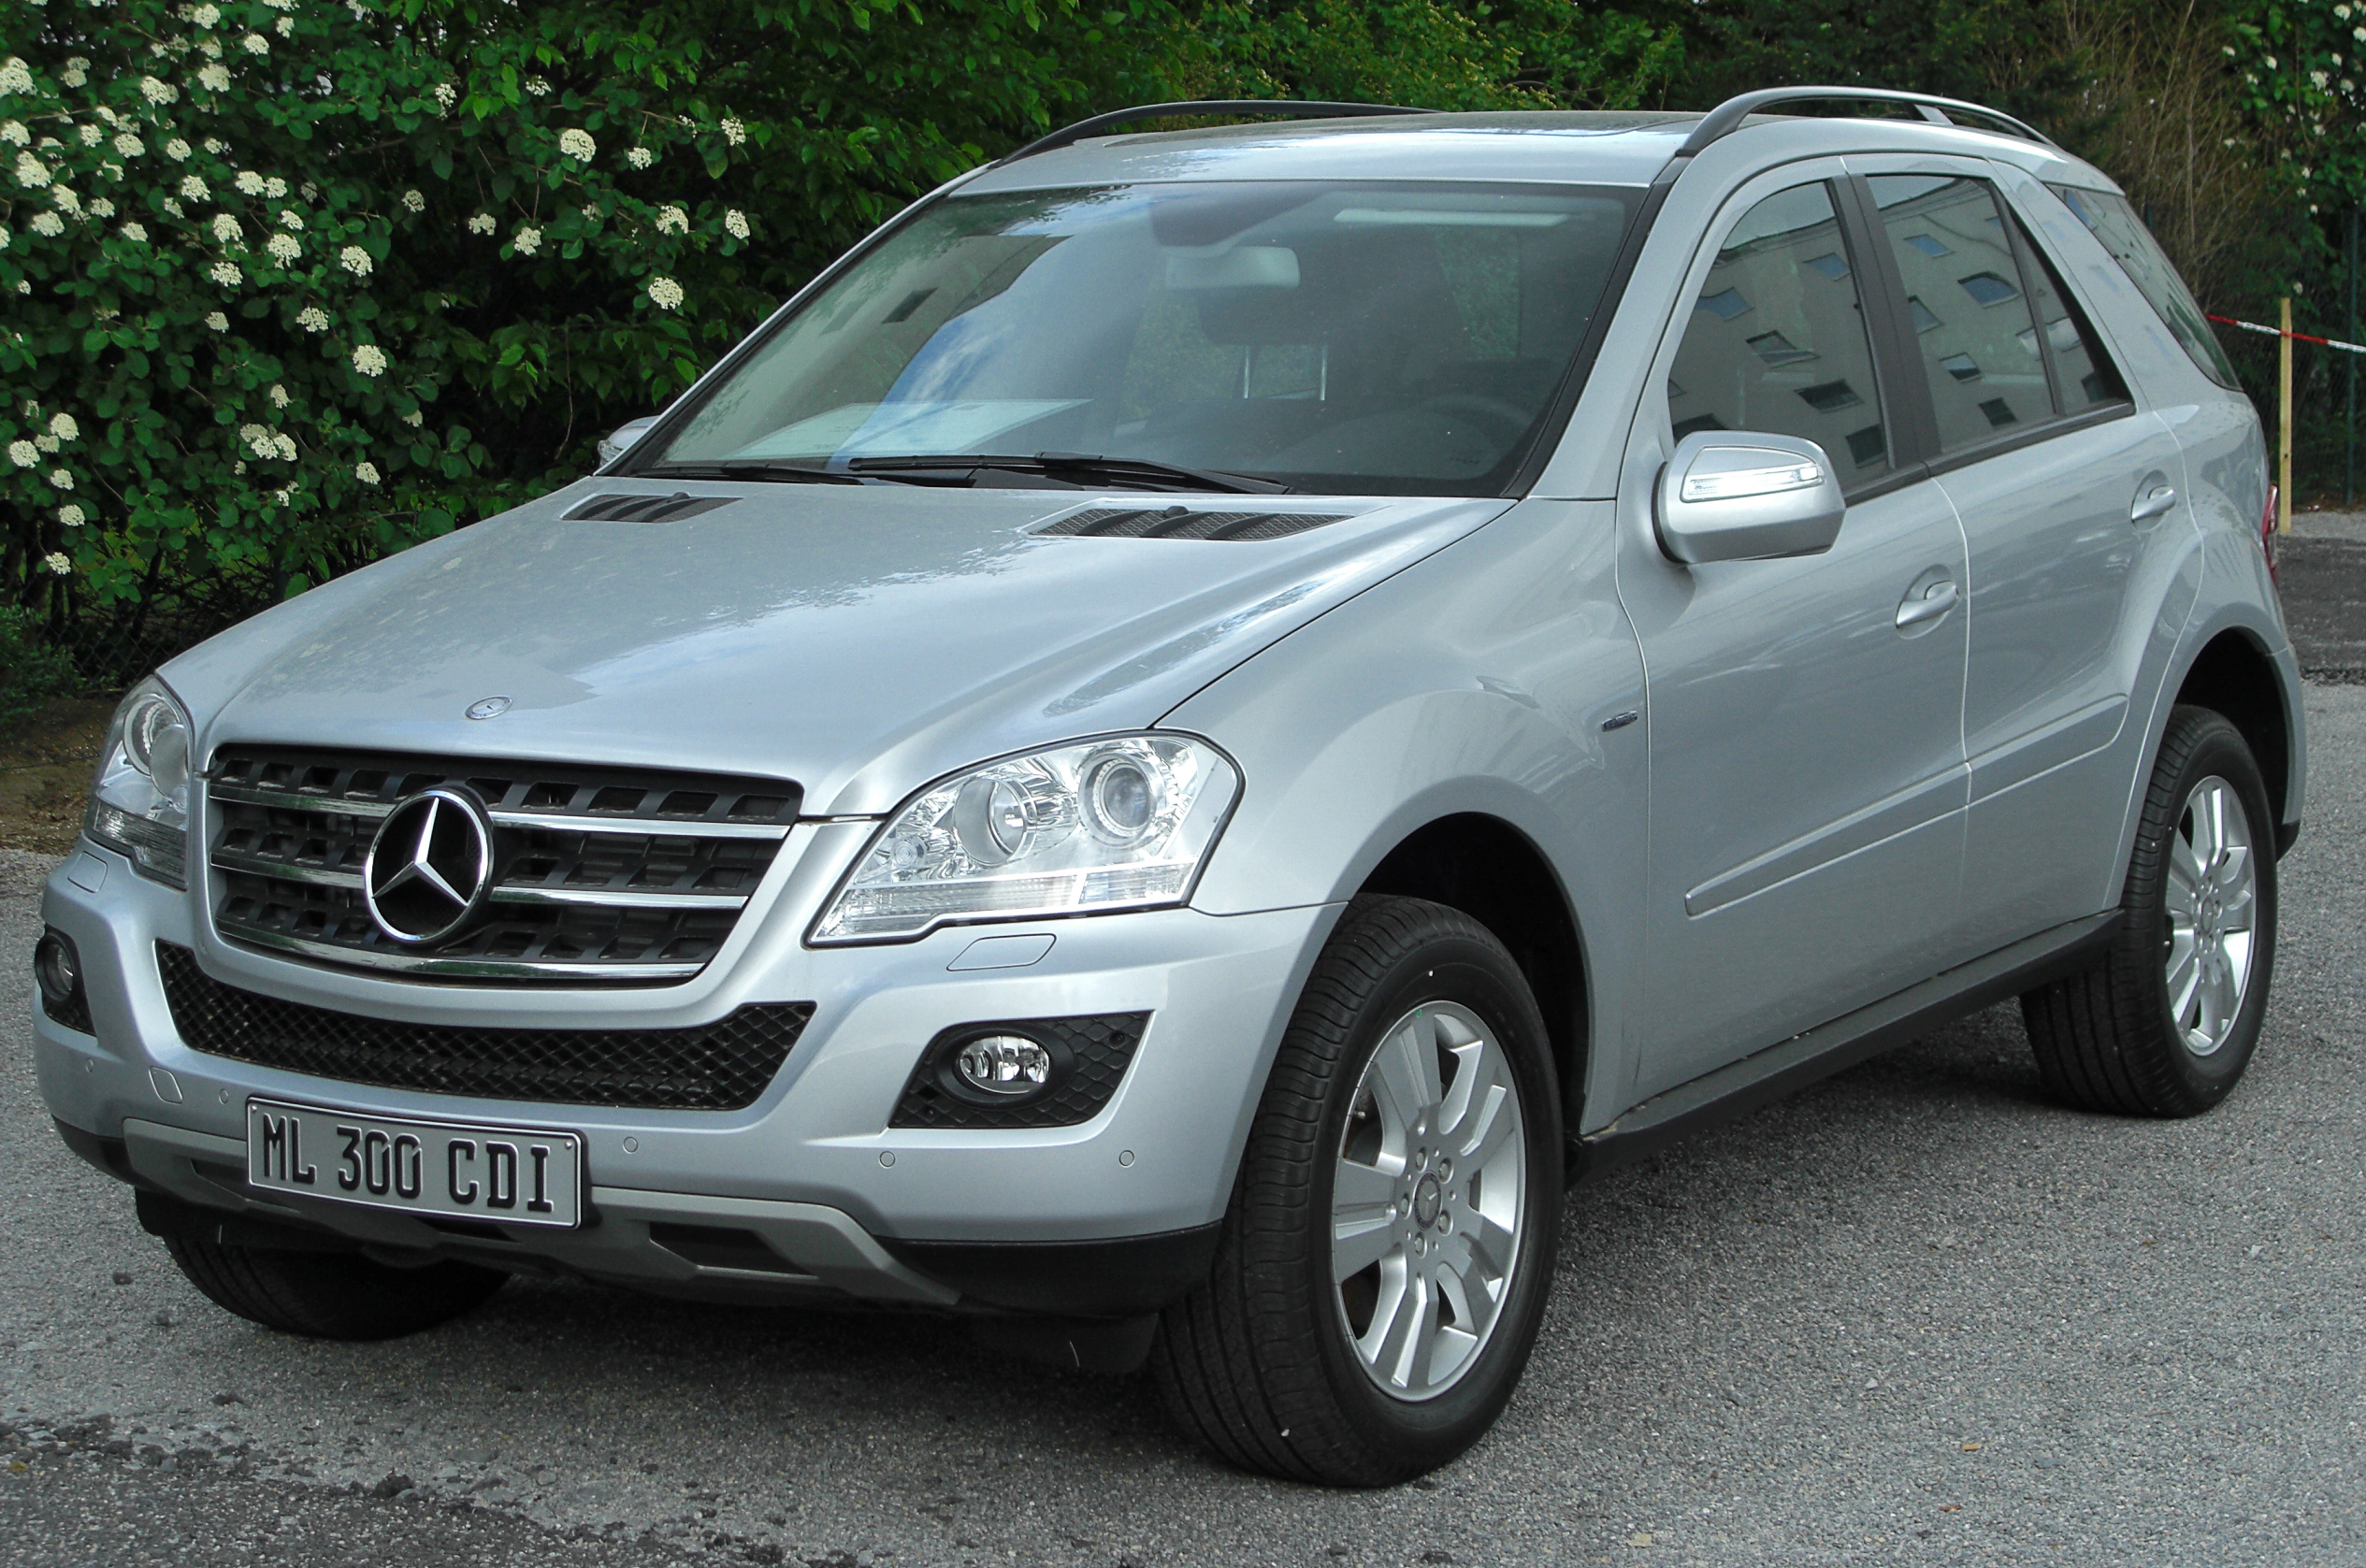 file mercedes ml 300 cdi 4matic blueefficiency w164. Black Bedroom Furniture Sets. Home Design Ideas